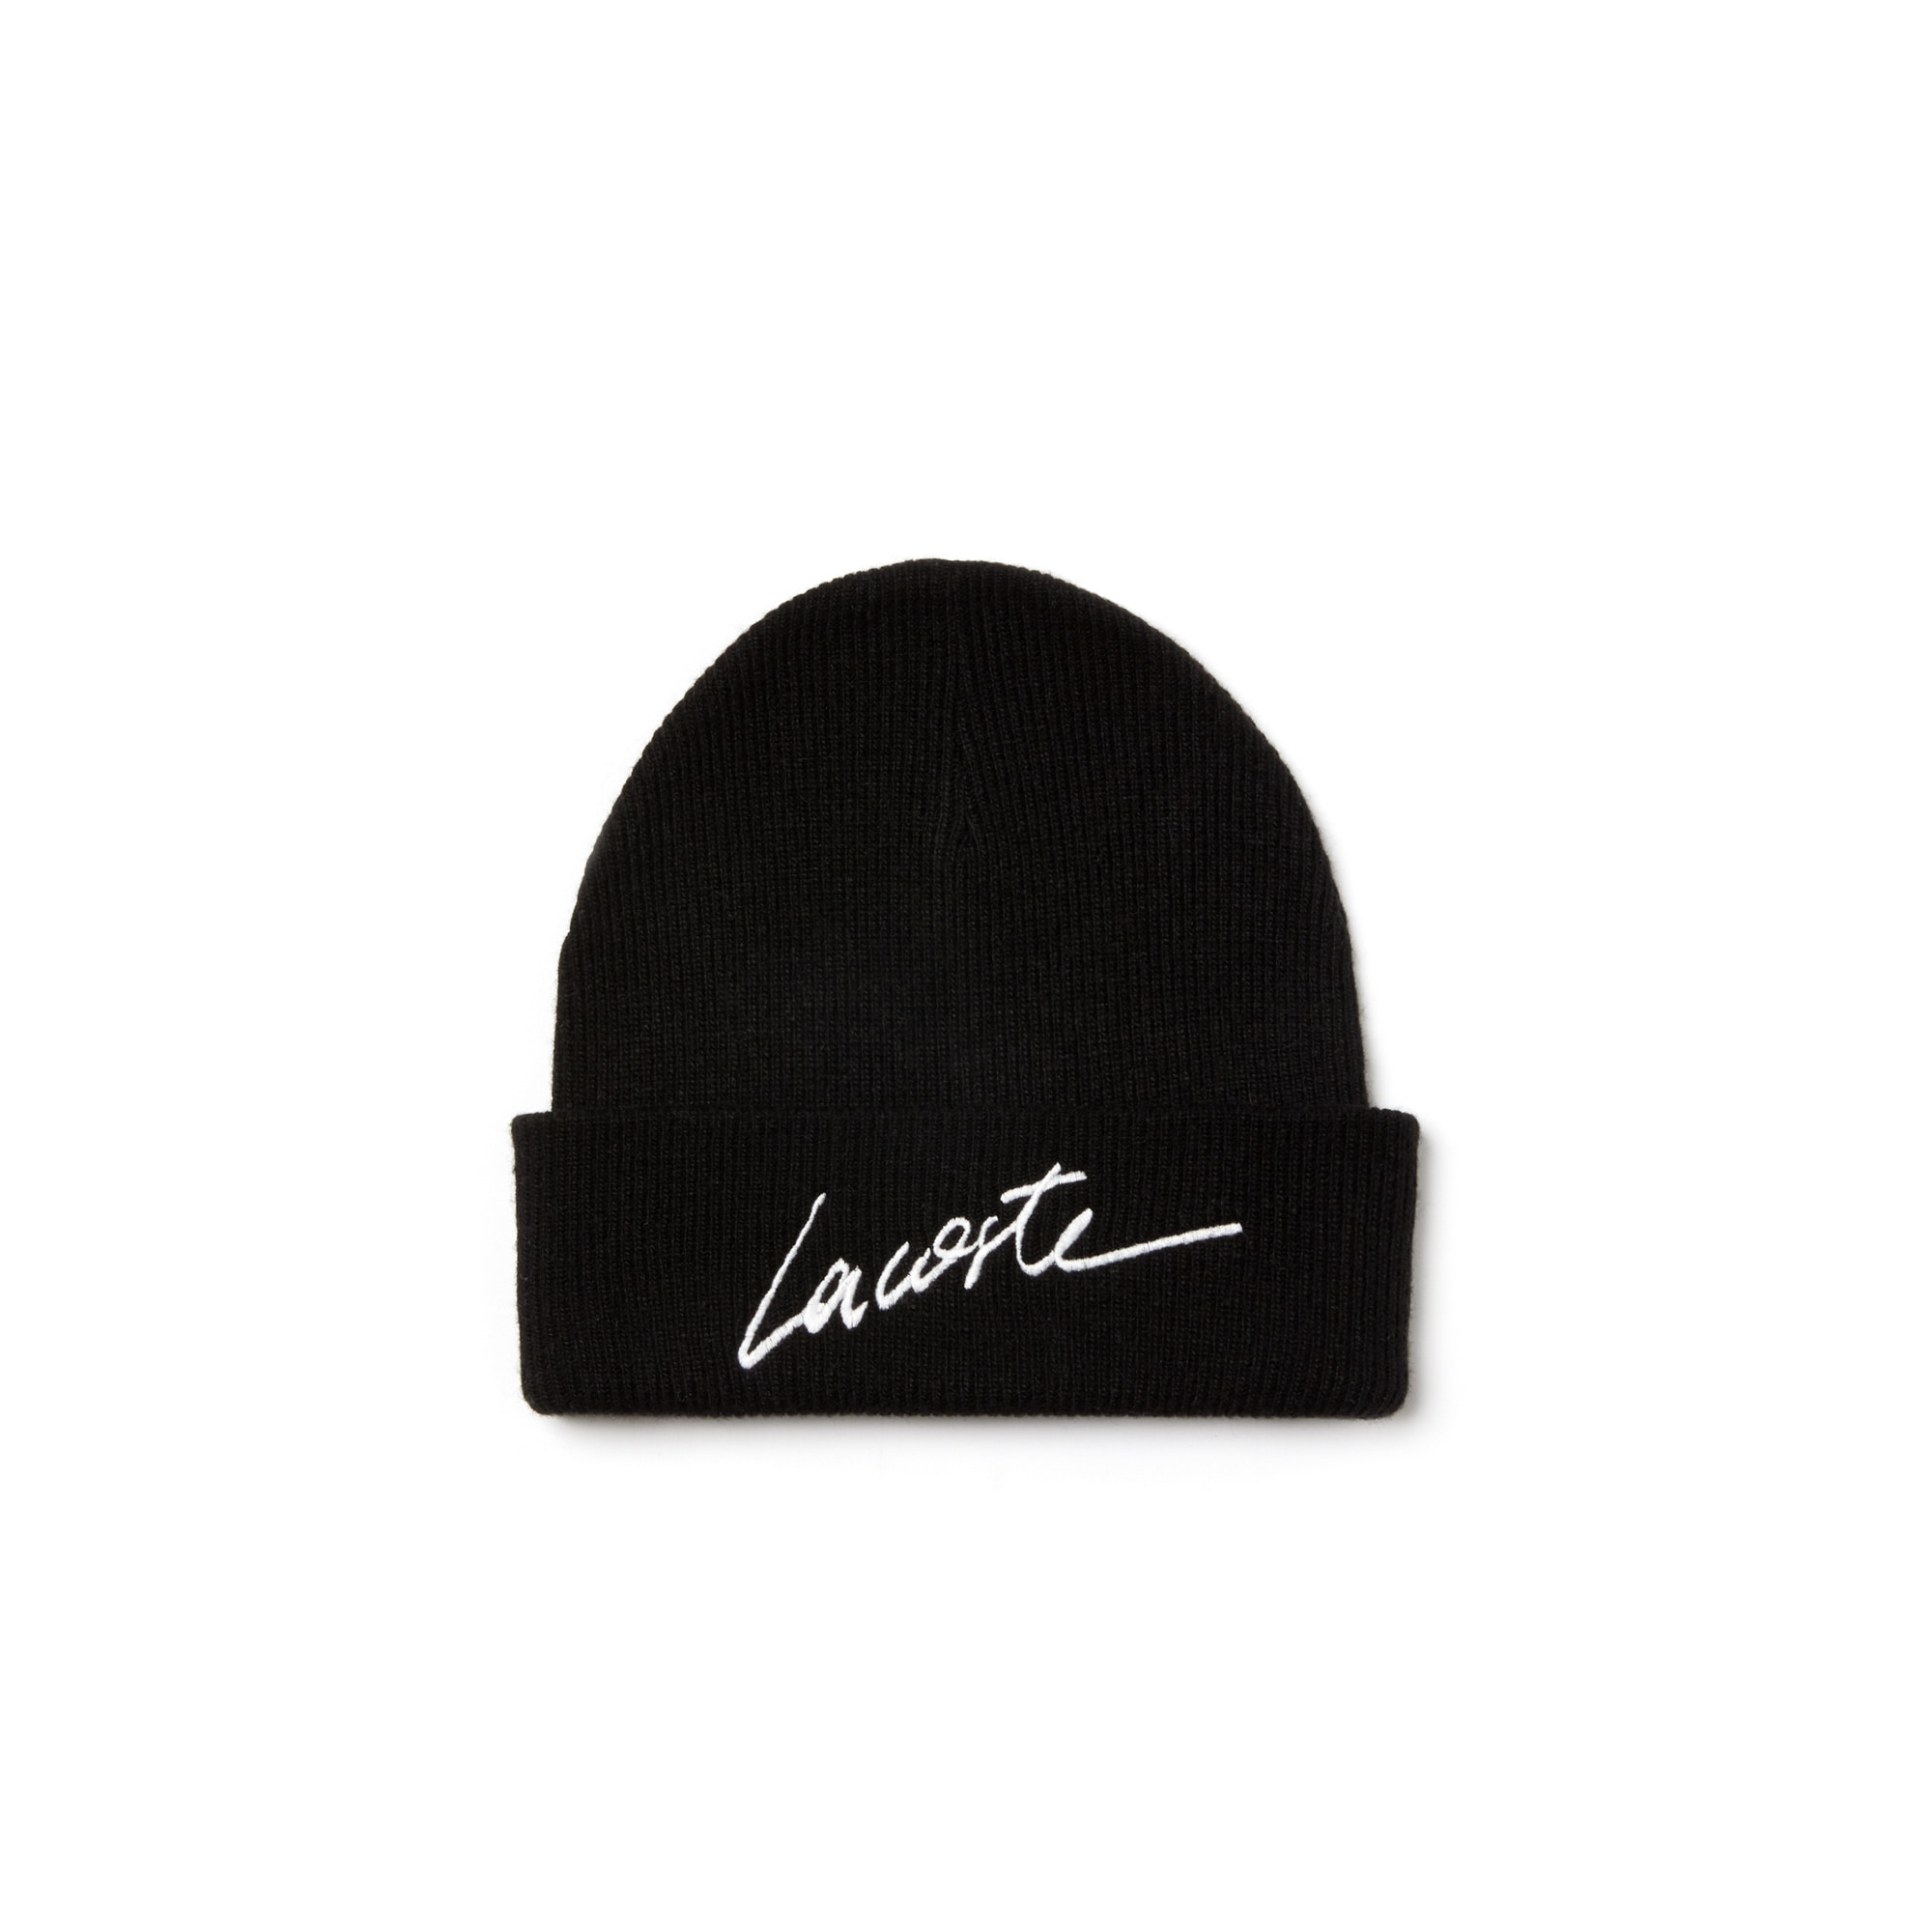 Unisex 라코스테 Lacoste LIVE Turned Edge Ribbed Wool Beanie,black/geode